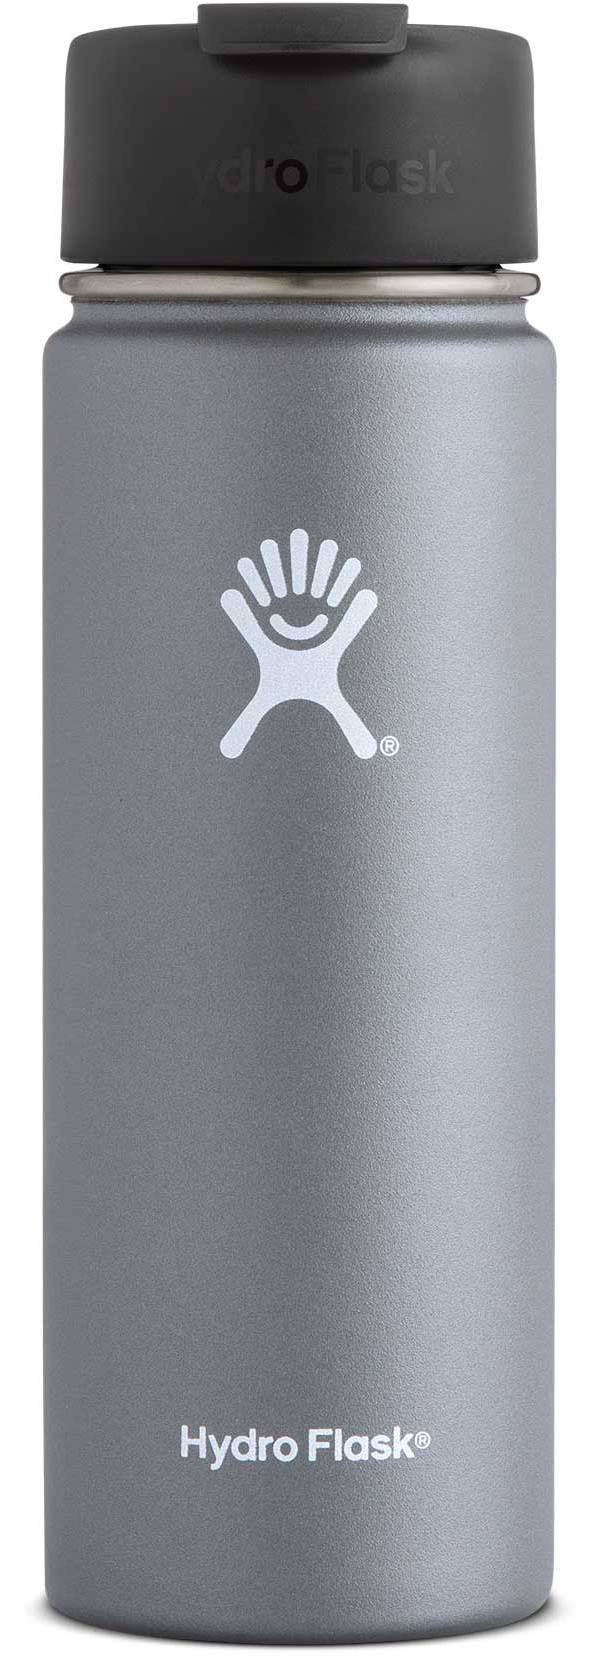 Hydro Flask Flip Top 20 oz. Bottle product image